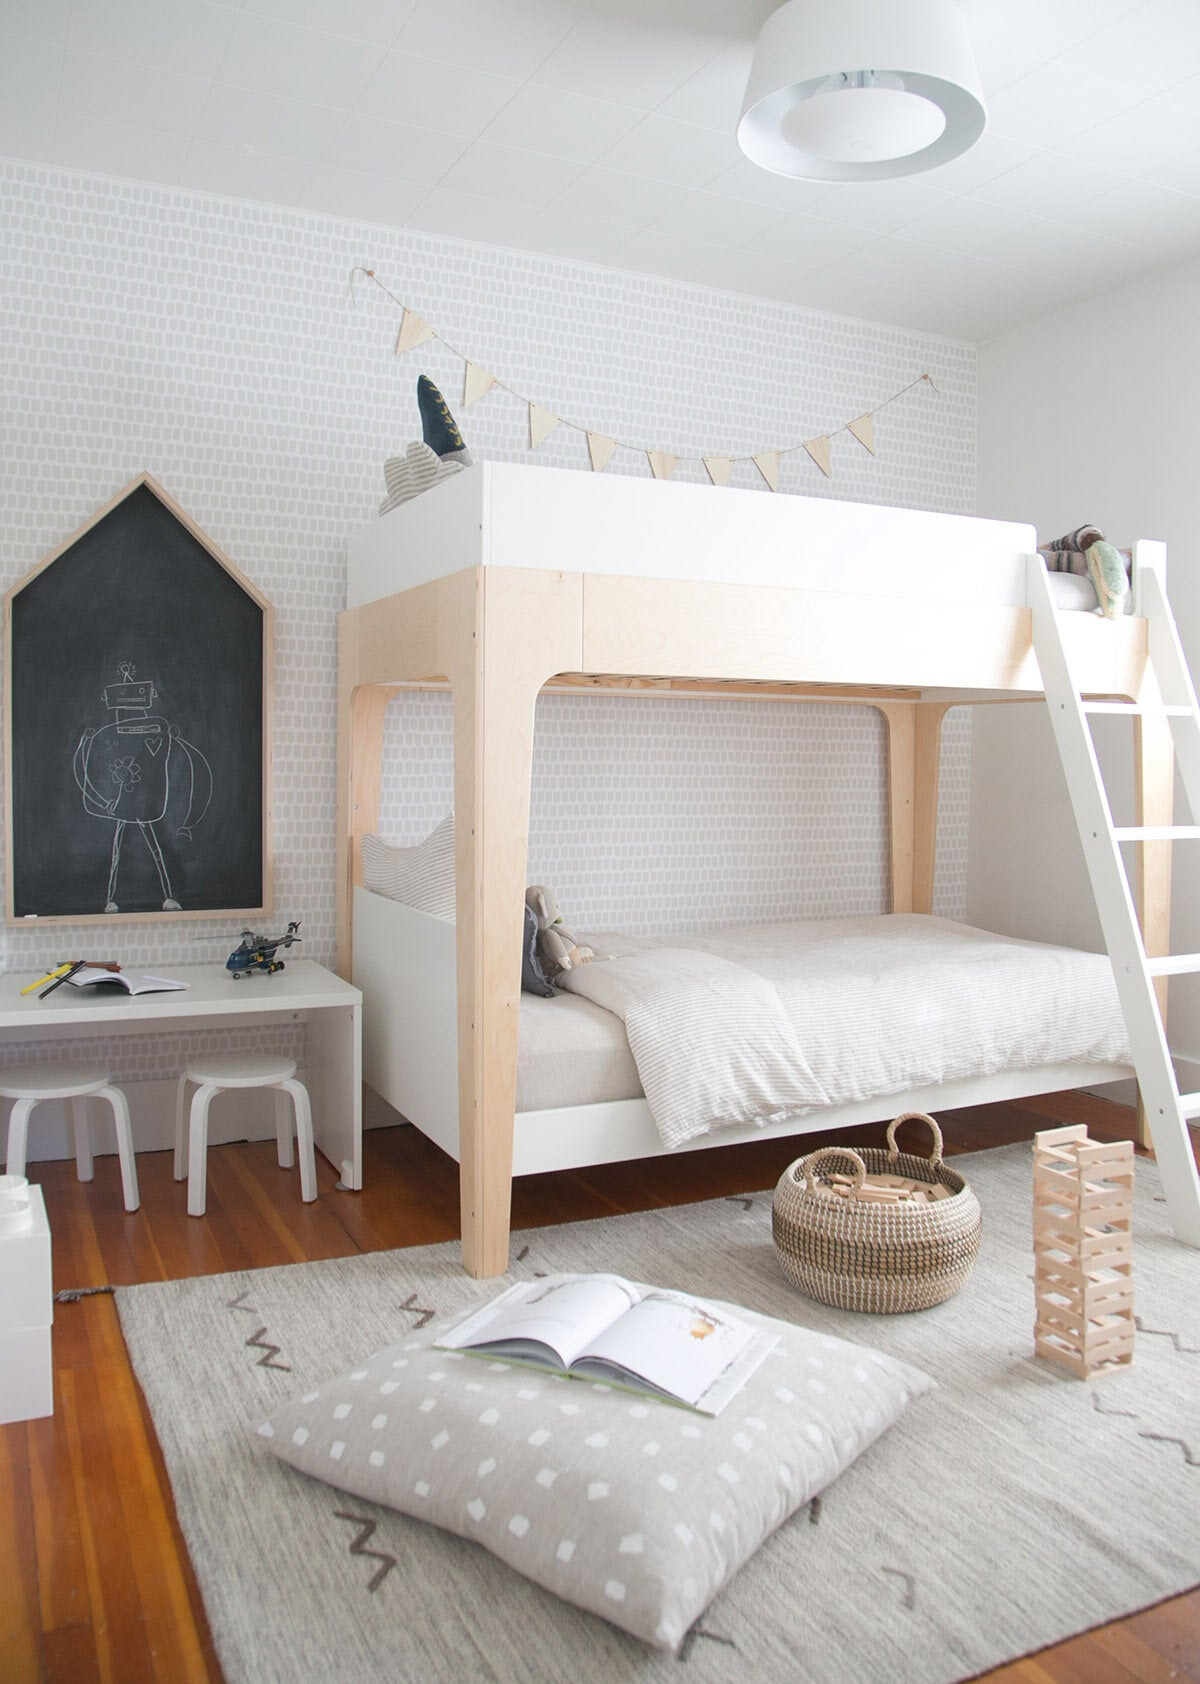 Modern boys room with light wood bunk bed, natural linen bedding, gender neutral removable wallpaper and white furniture